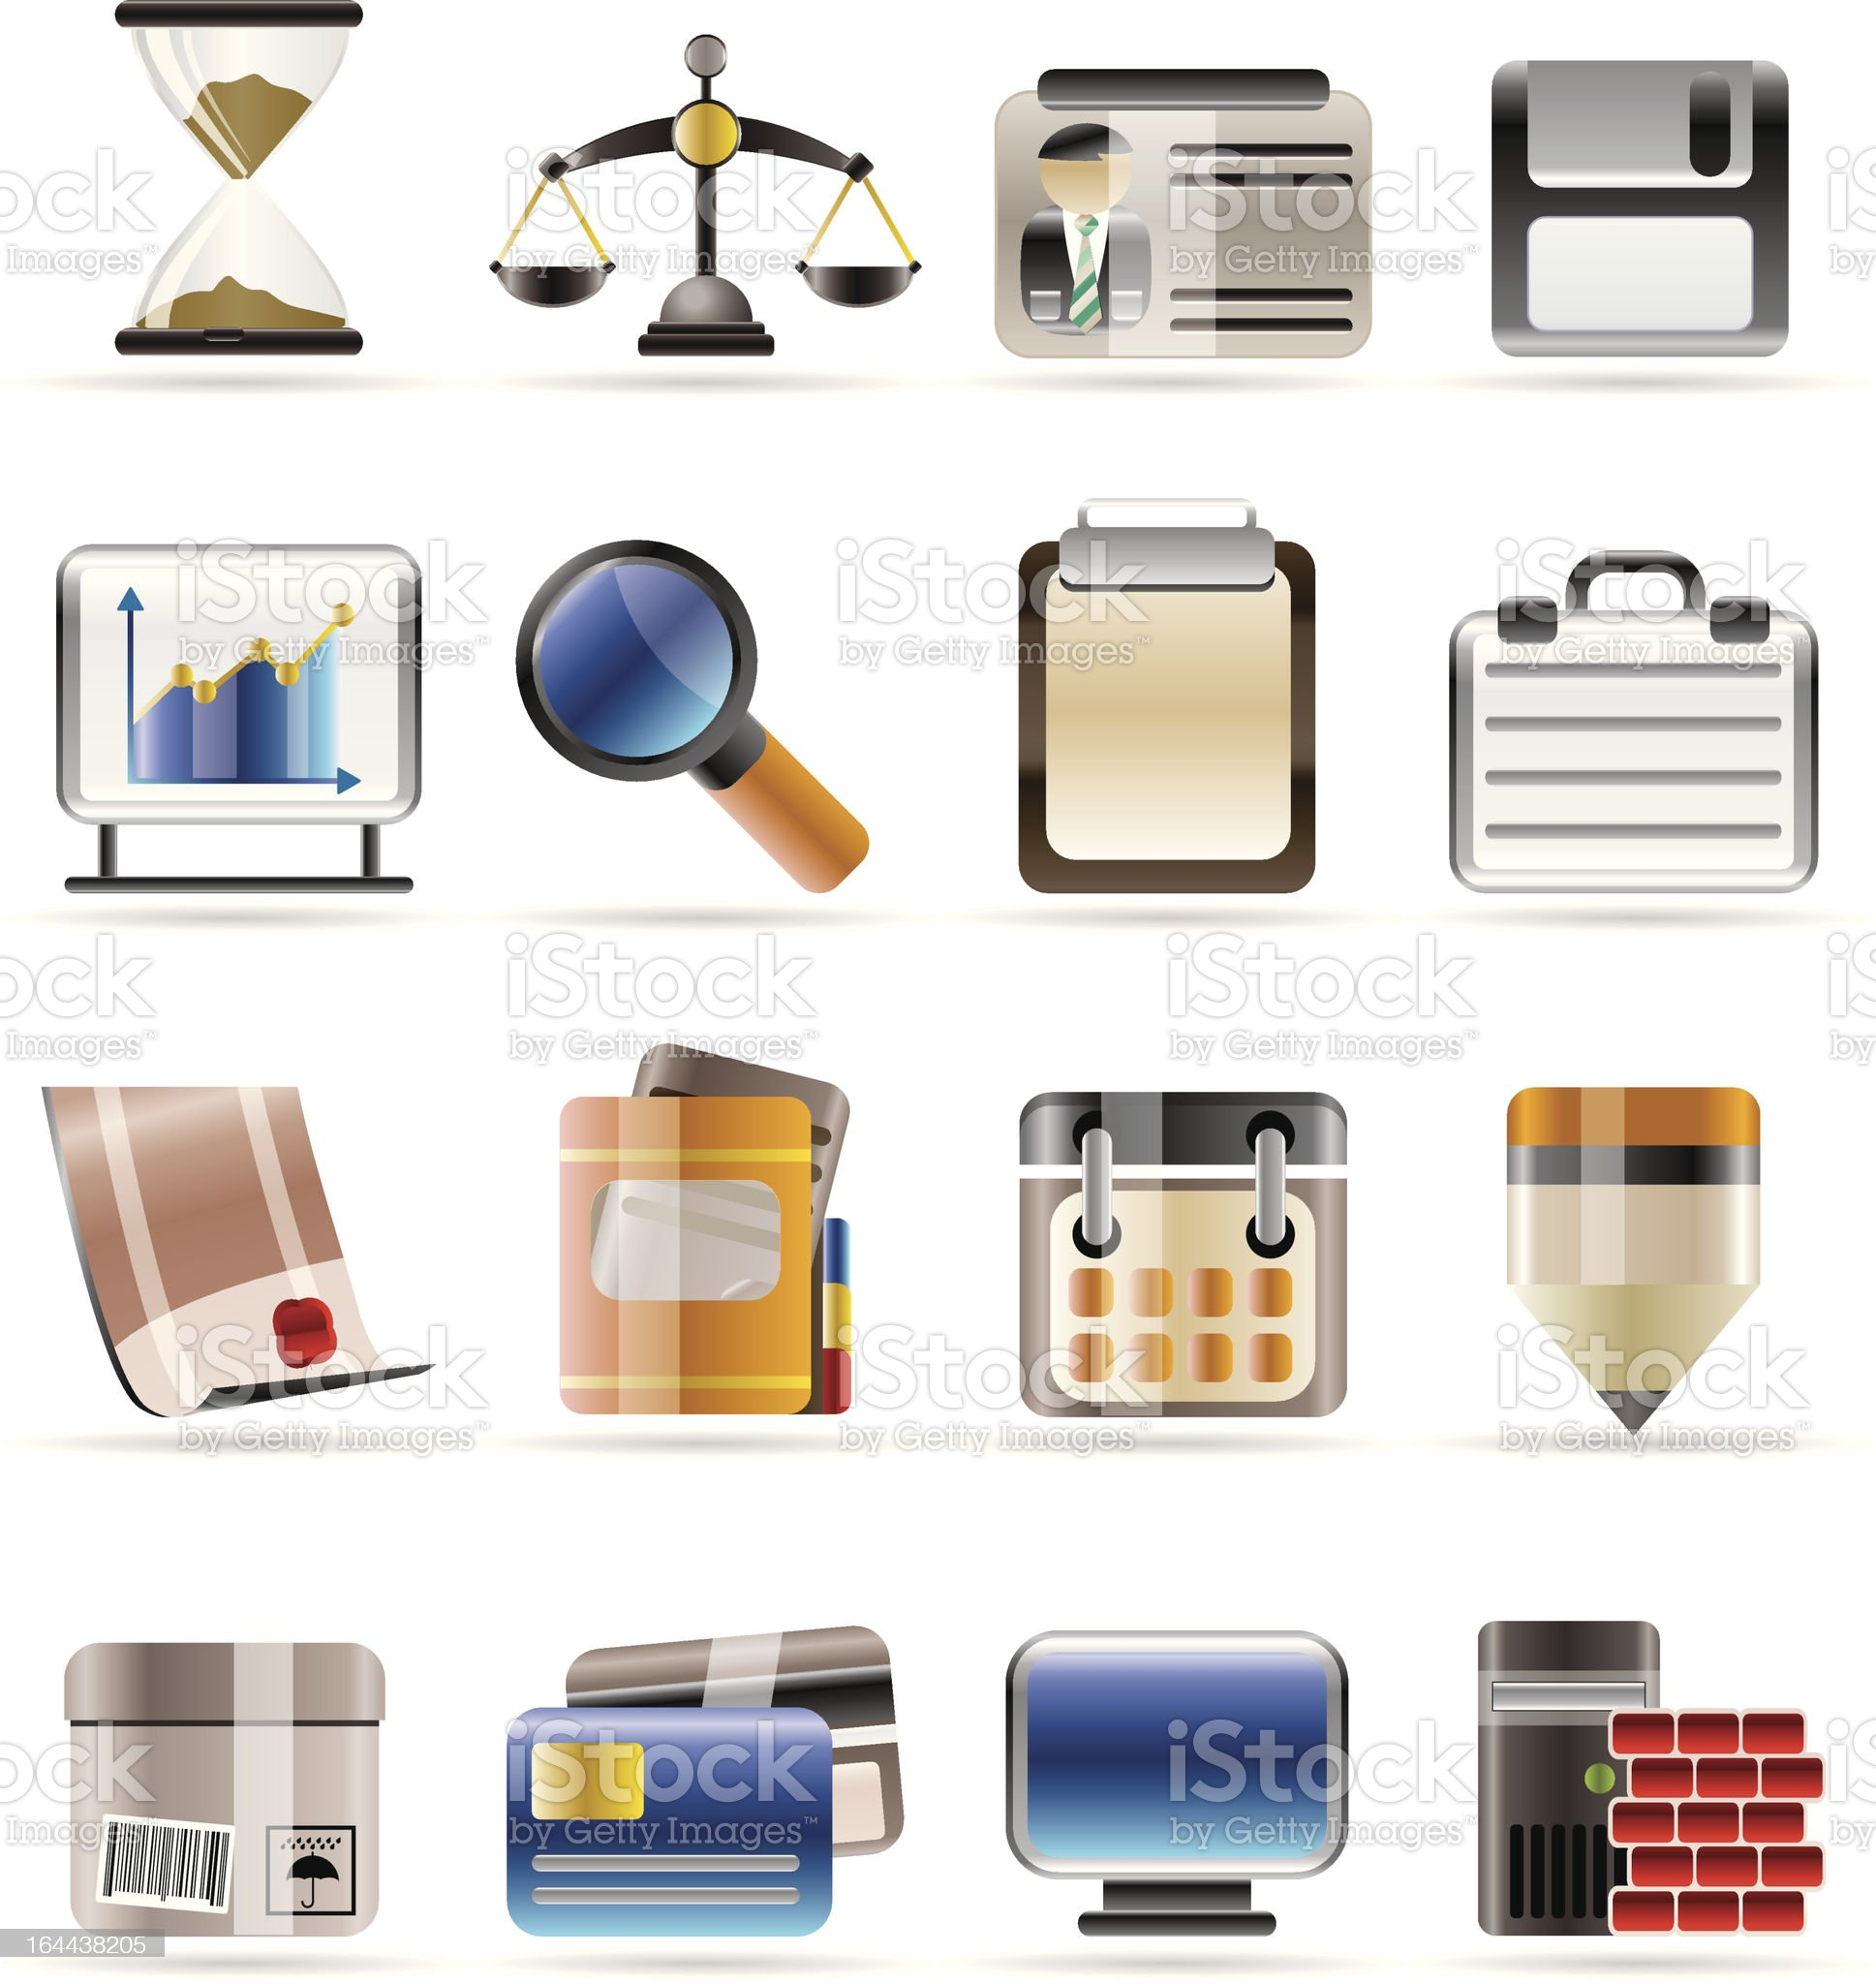 Realistic Business and office icons royalty-free stock vector art